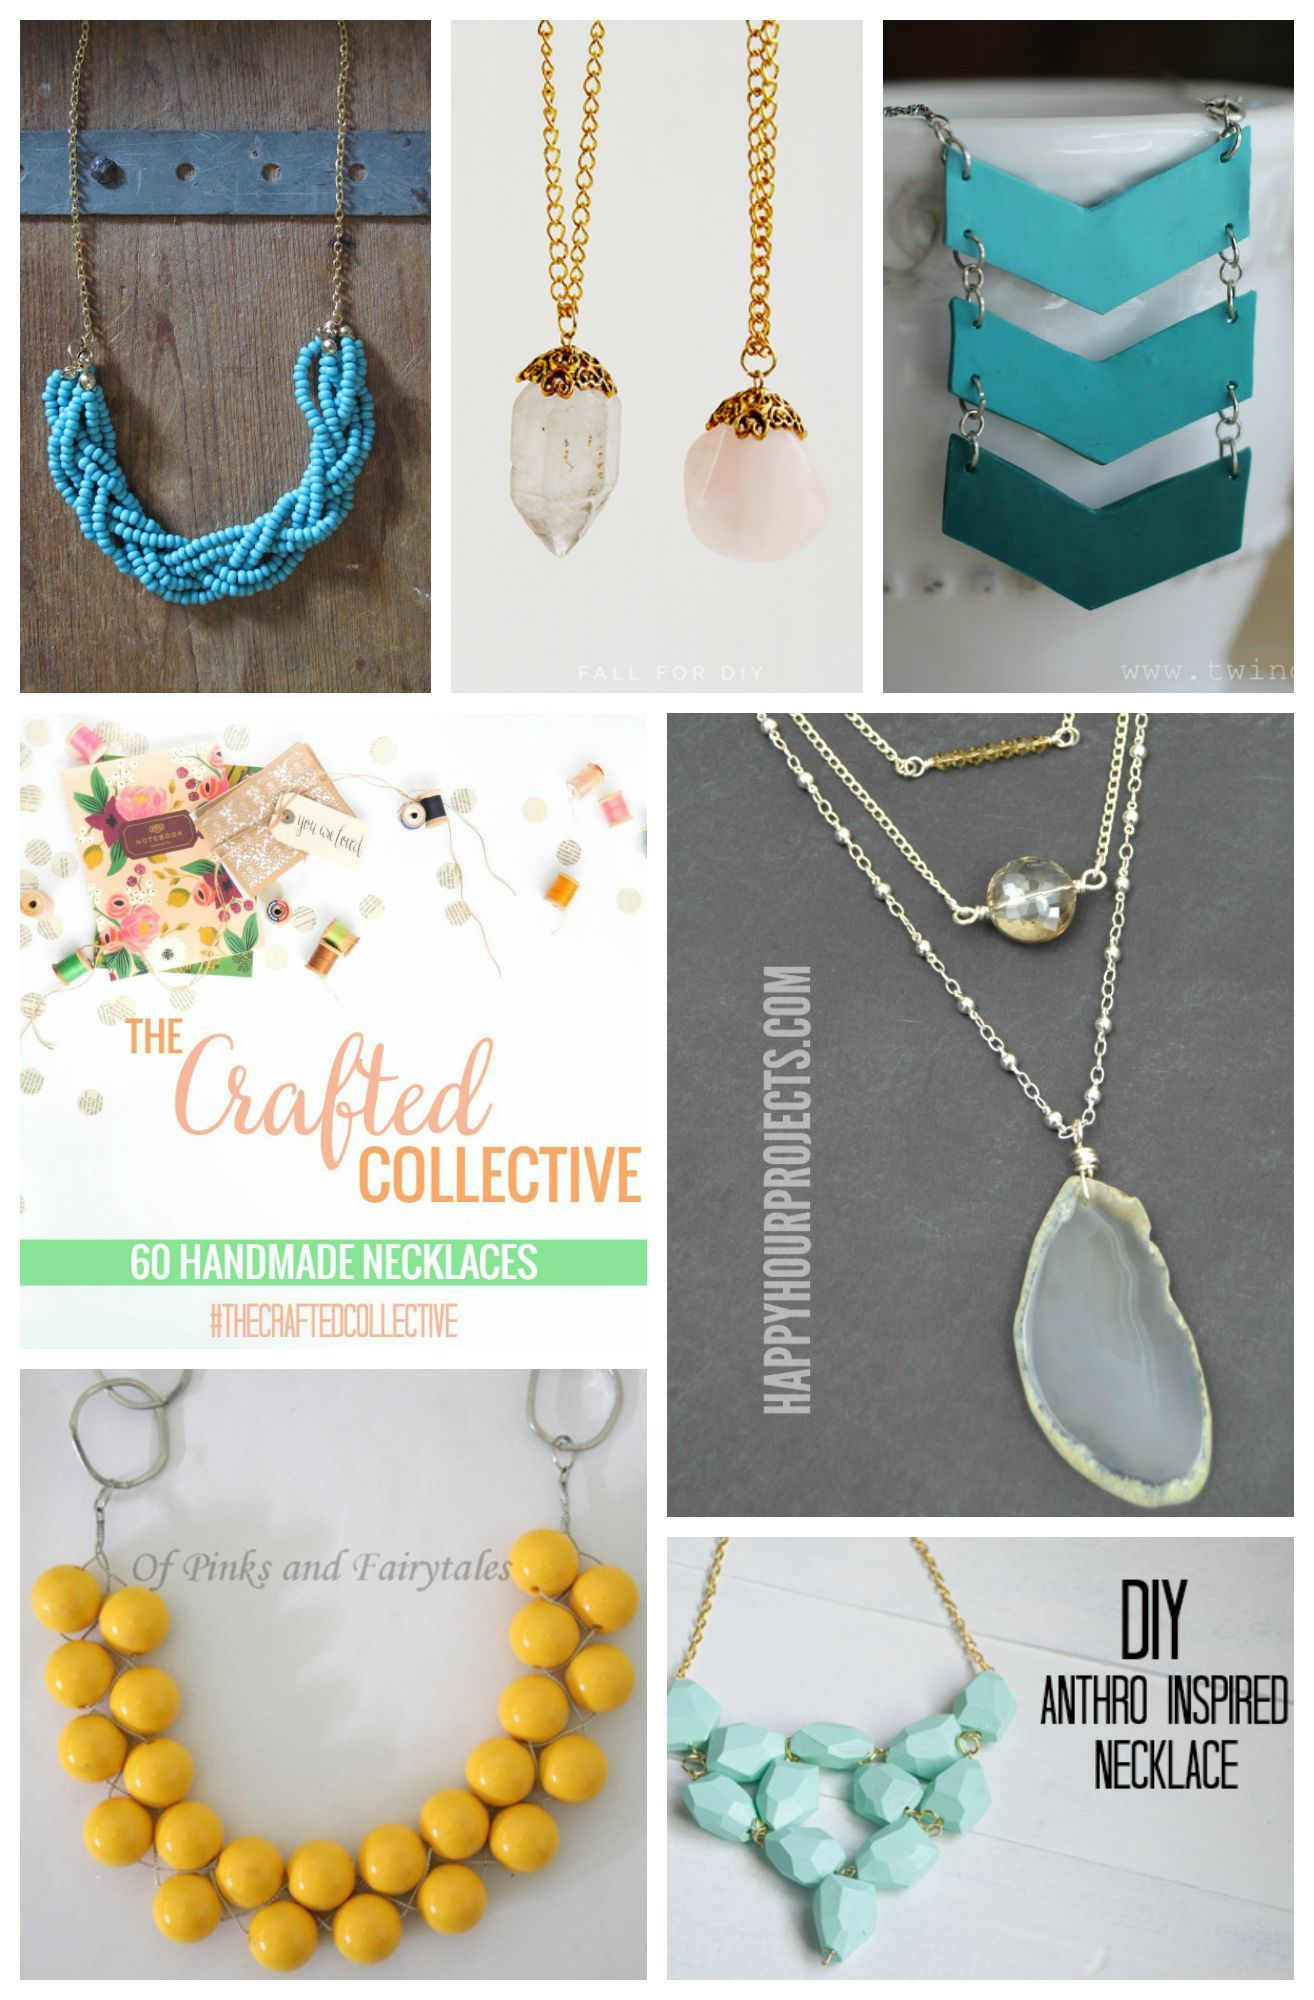 Handmade necklaces handmade necklaces and diy necklace 60 gorgeous handmade necklaces you can easily make yourself and love solutioingenieria Choice Image